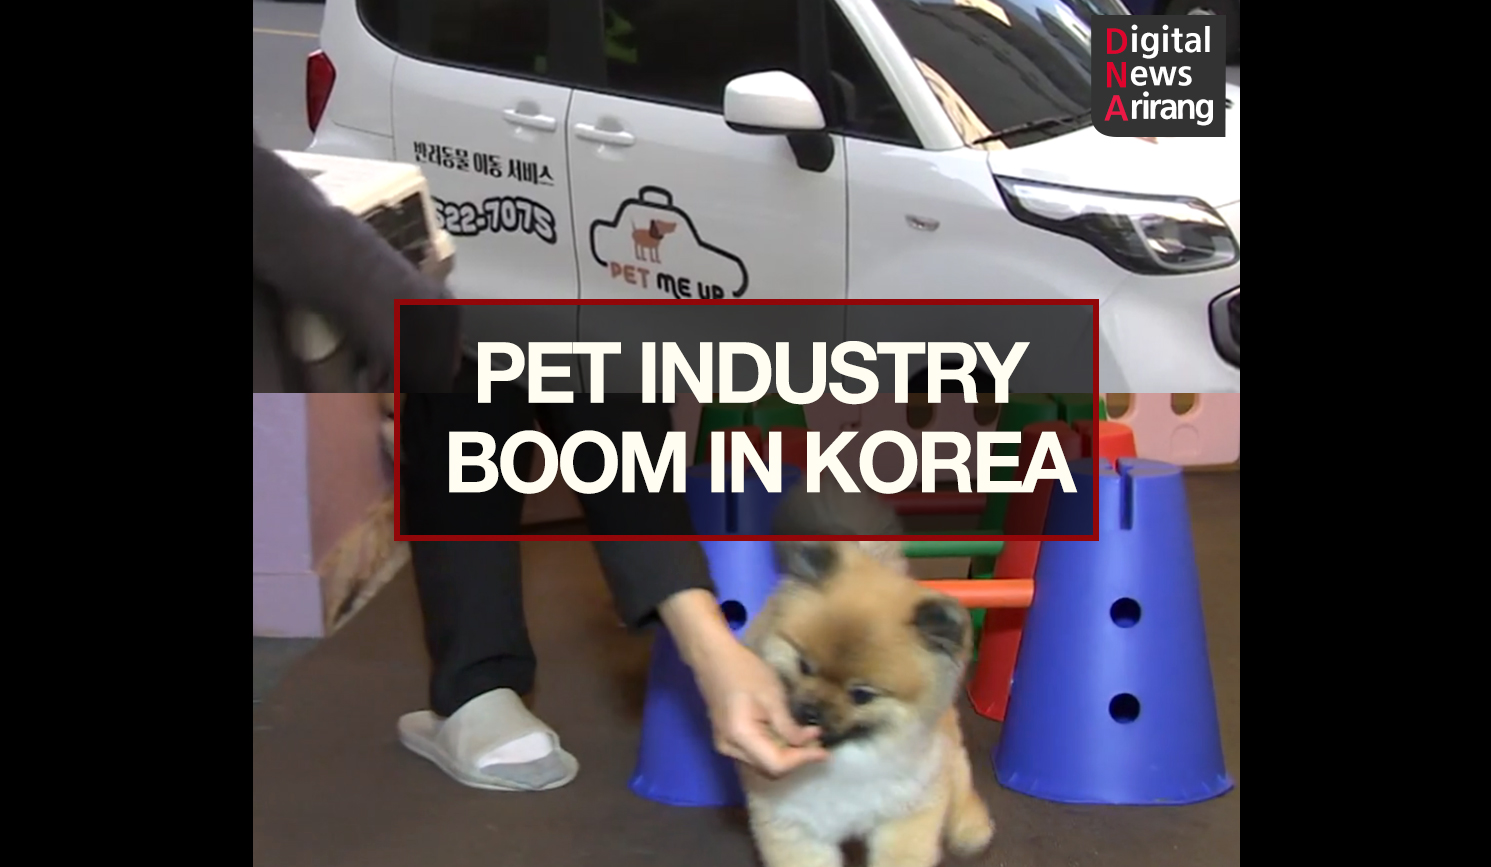 [DNA]Pet Industry Boom in Korea